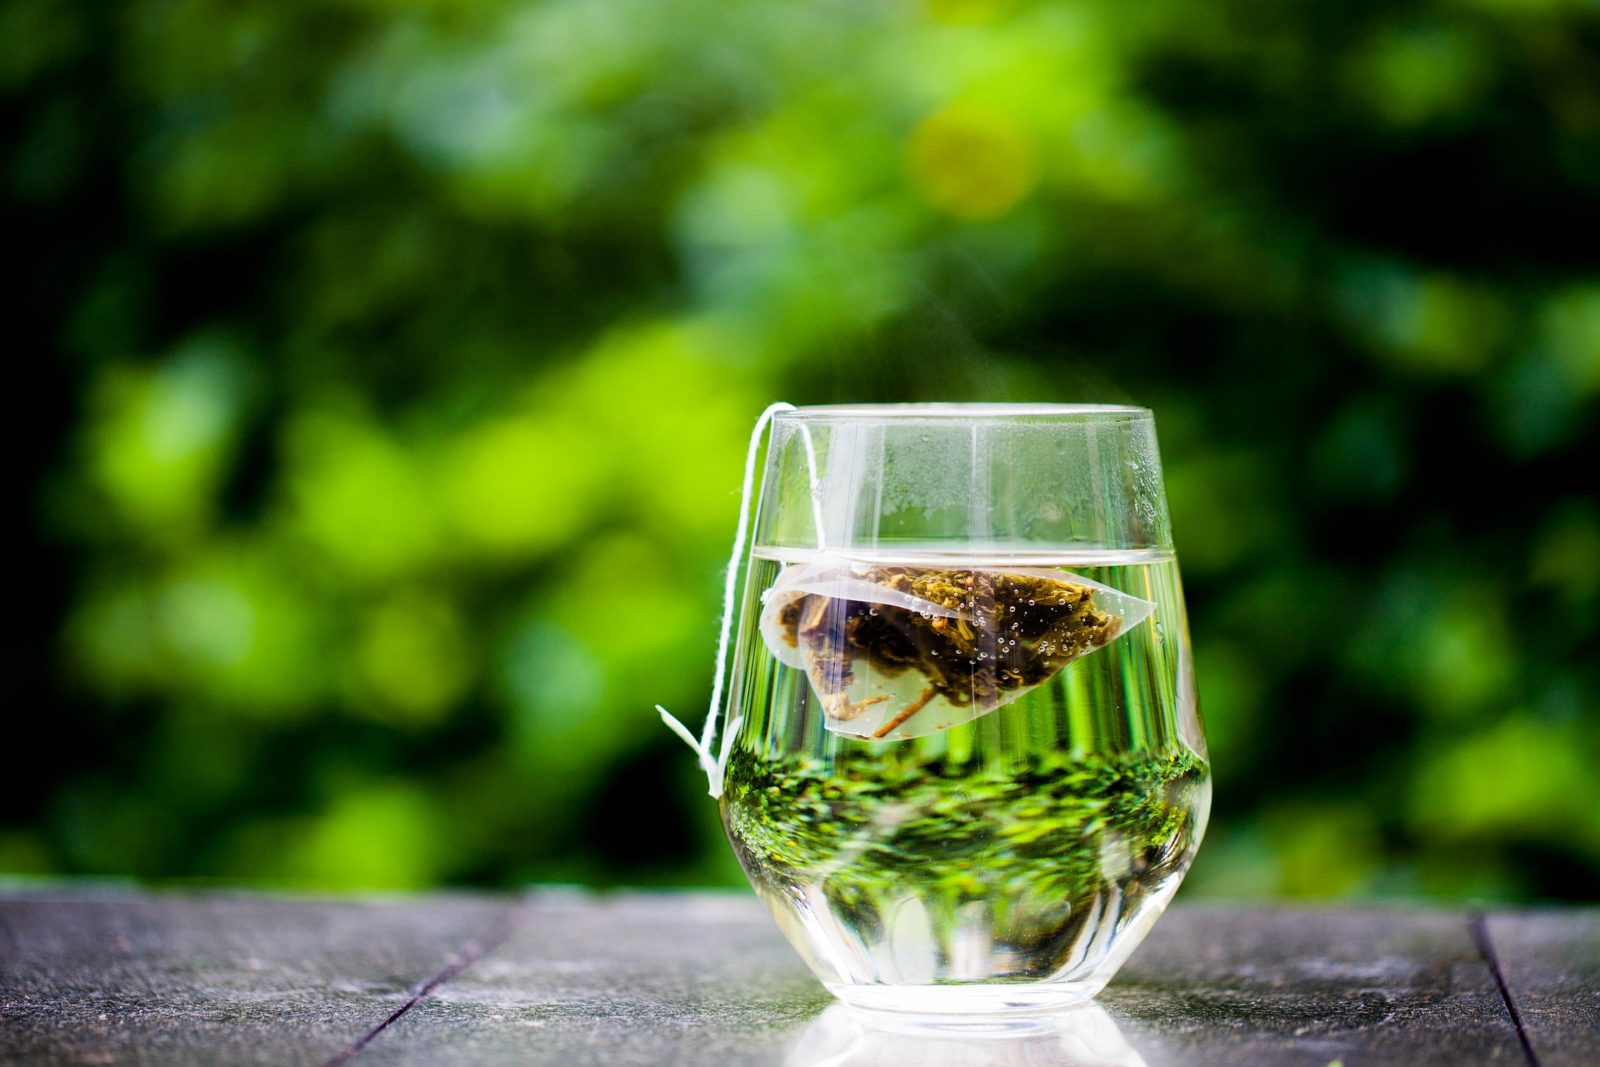 Can't shake an itch? Green tea can supposedly help ease the pain. Source: Pixabay